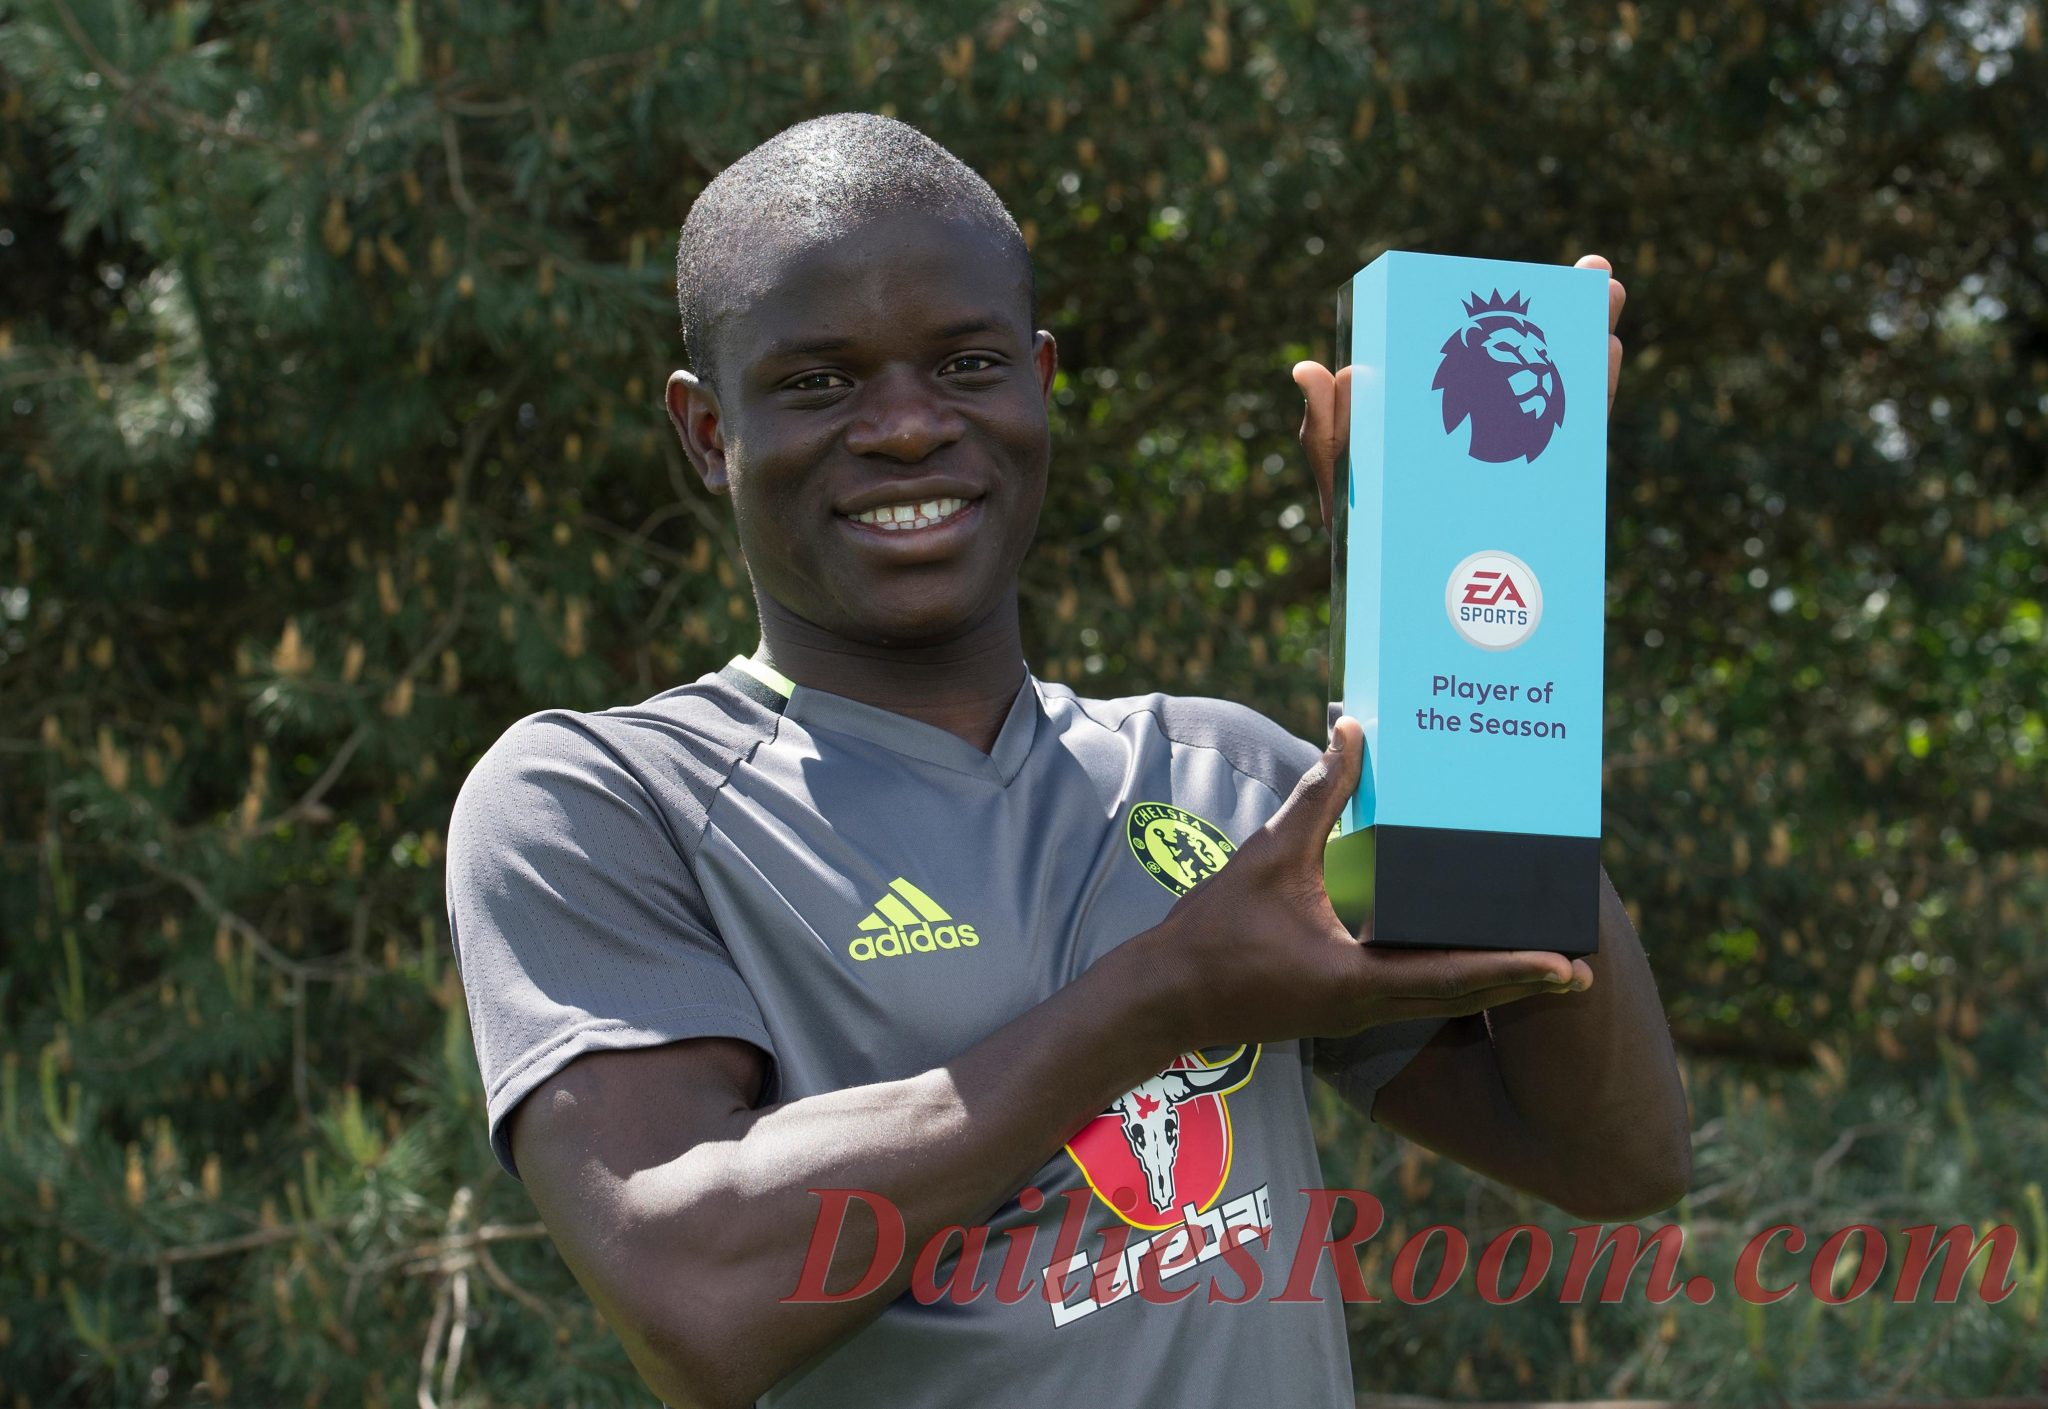 N'golo Kante wins English Premier League Best Player of the Season